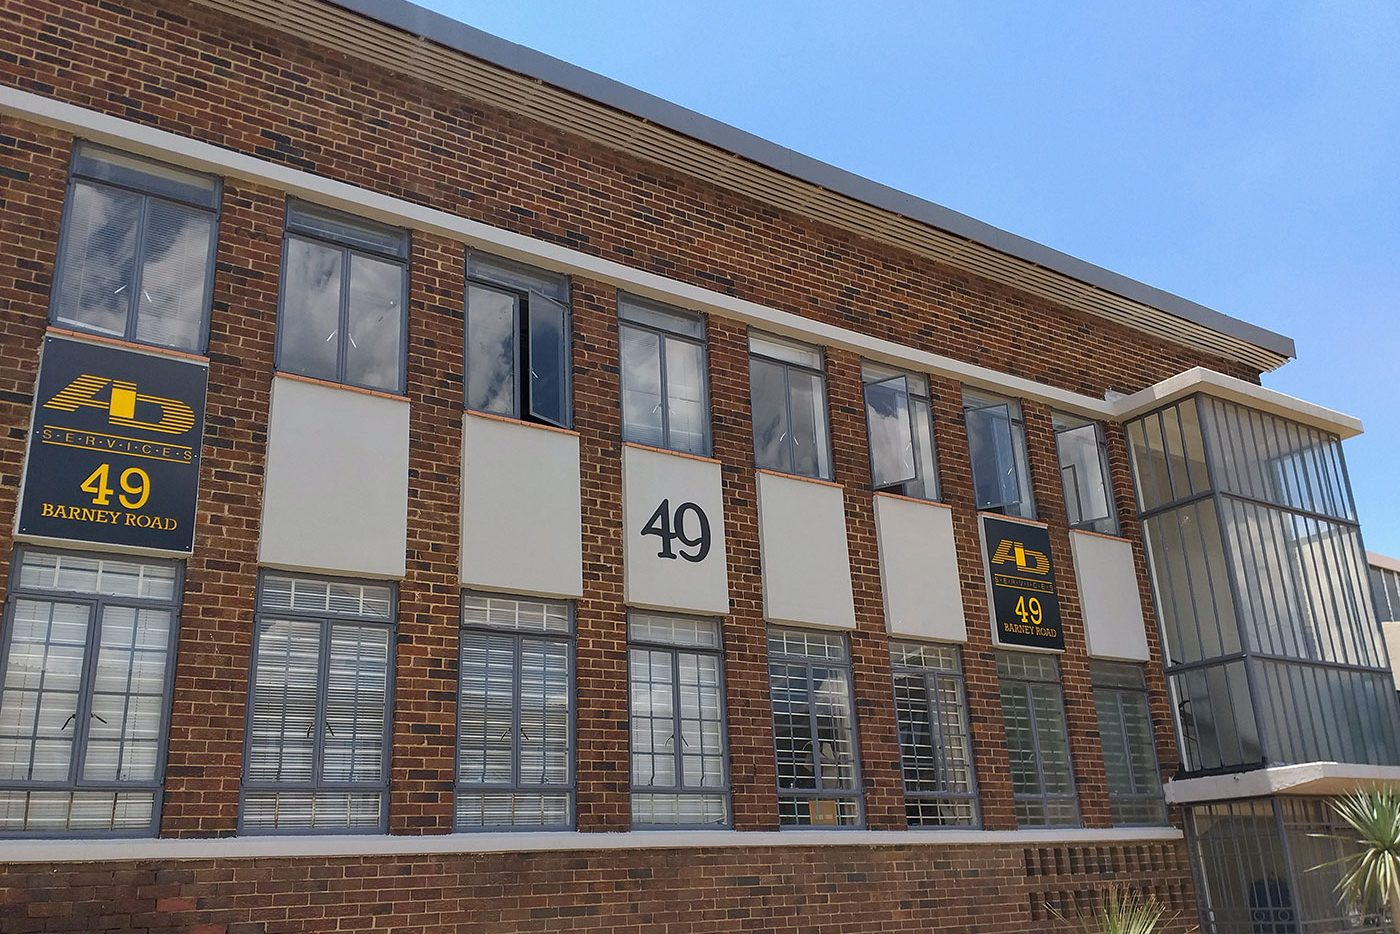 A&D sign on building